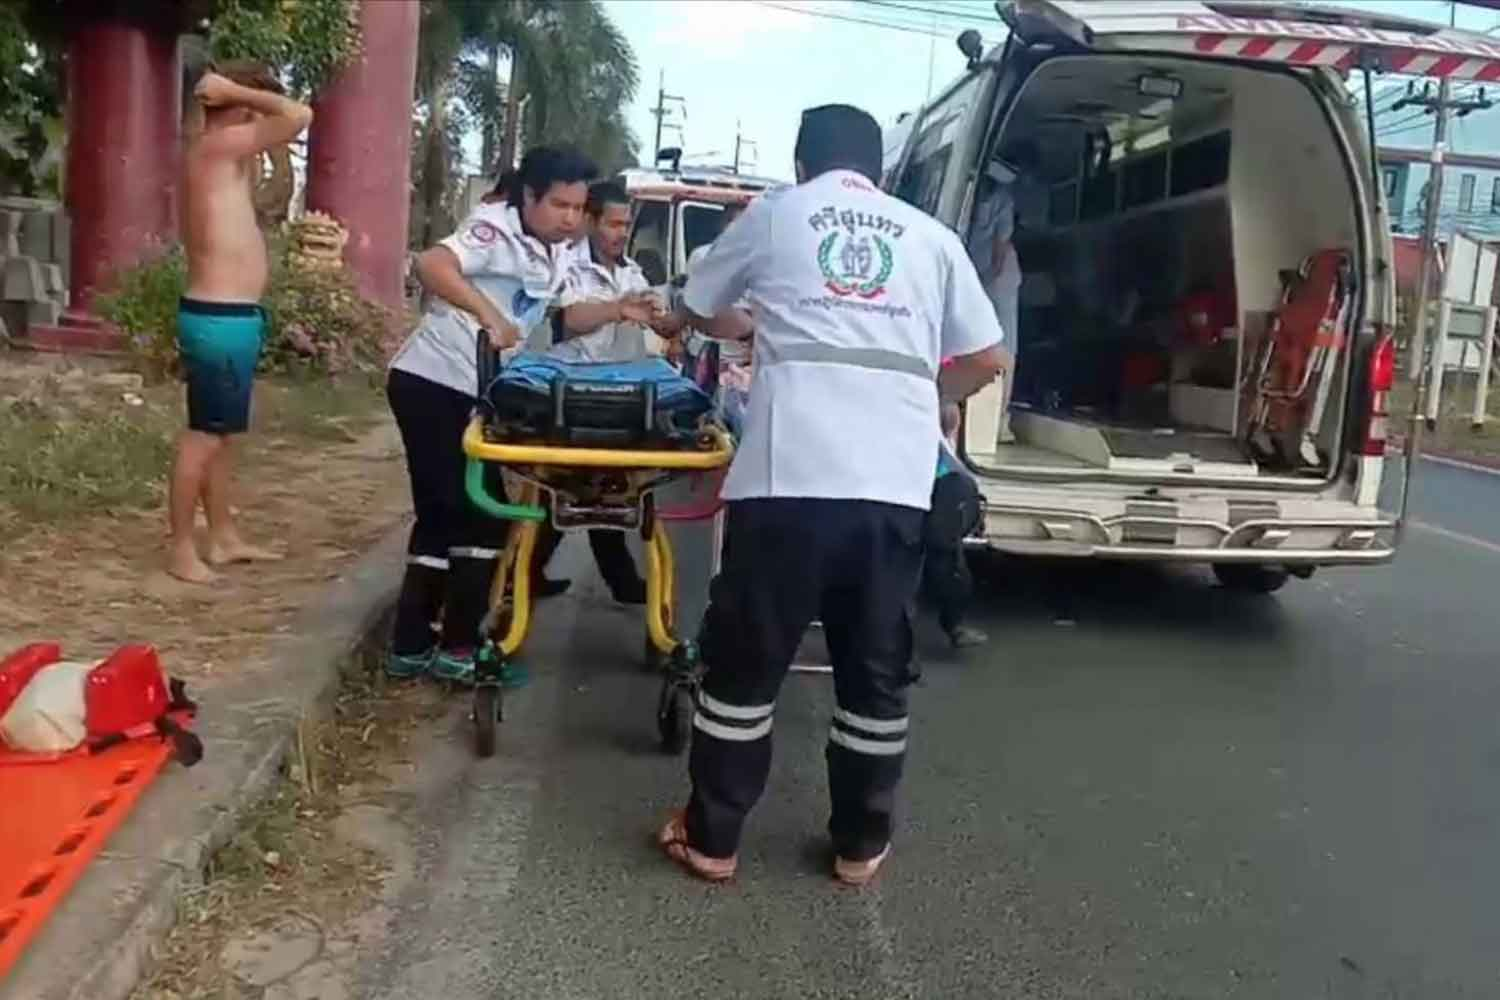 Rescuers place the unconscious young boy in an ambulance for transpoprt to Thalang Hospital in Phuket after he fell into a pool at a water park on Sunday. At the hospital, he was pronounced dead from drowning. (Photo by Achadtaya Chuenniran)